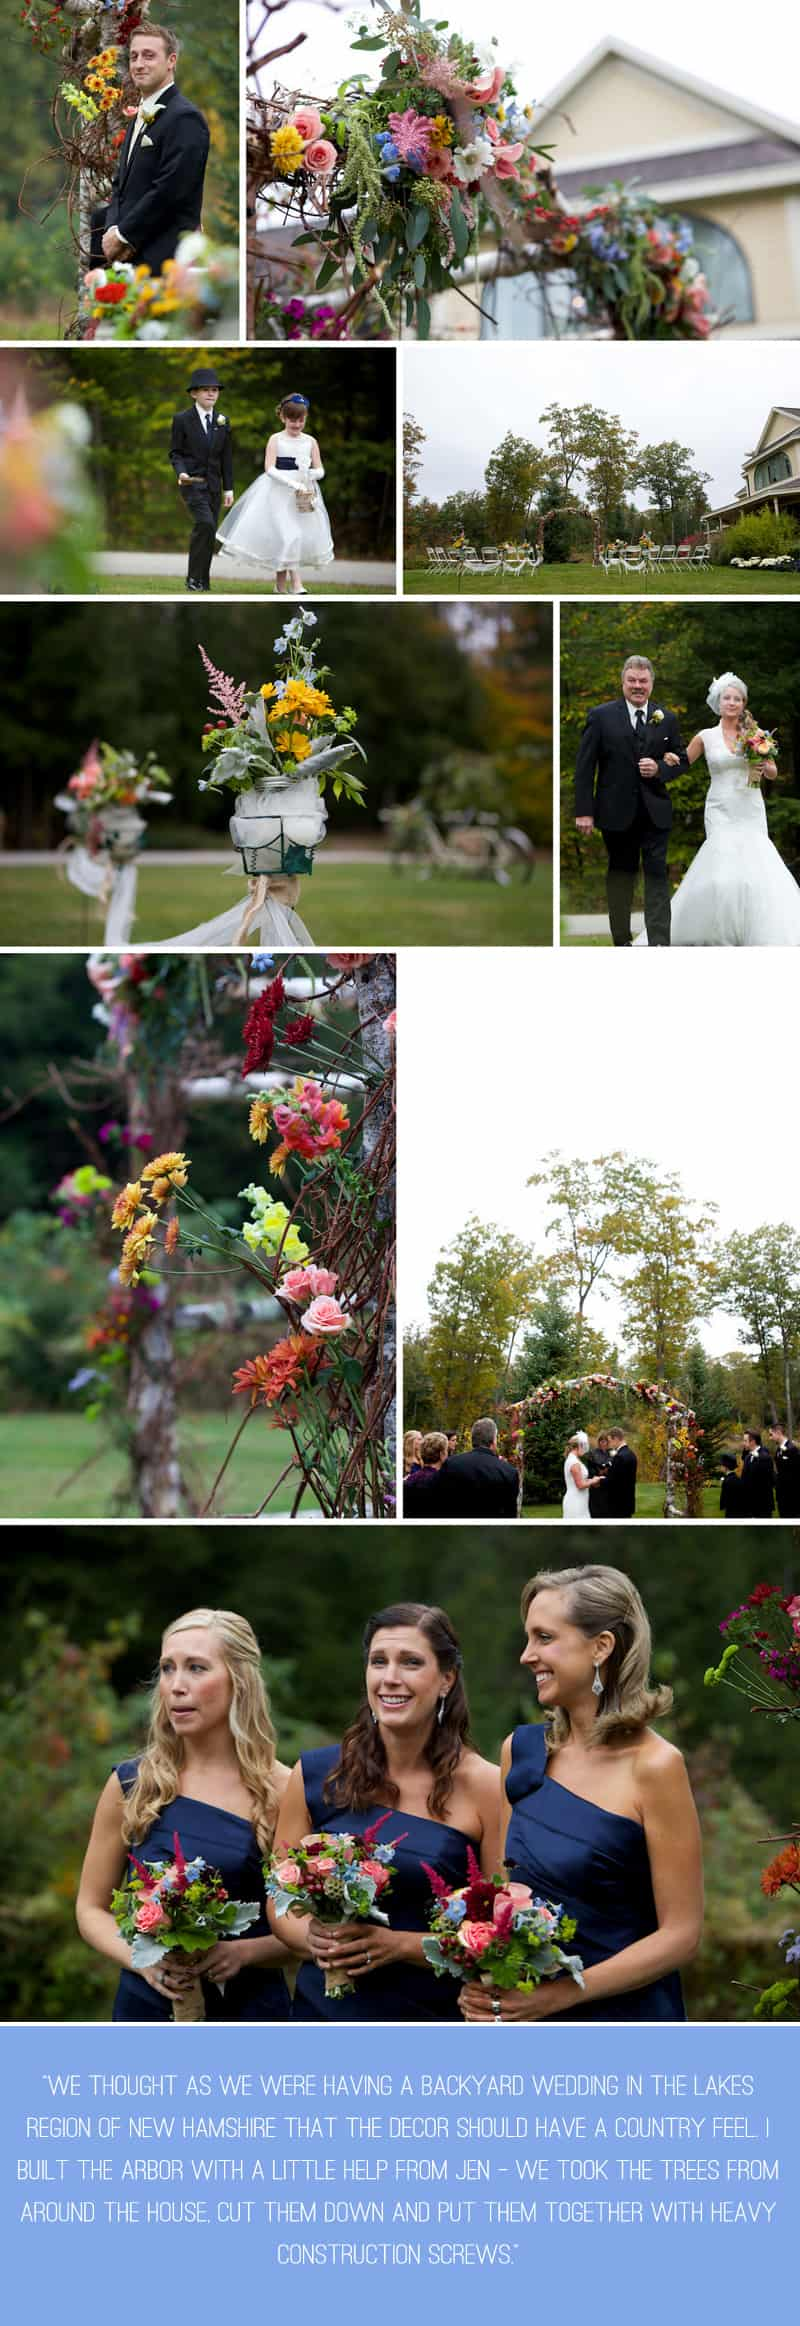 Wedding filled with Beautiful Florals 1835